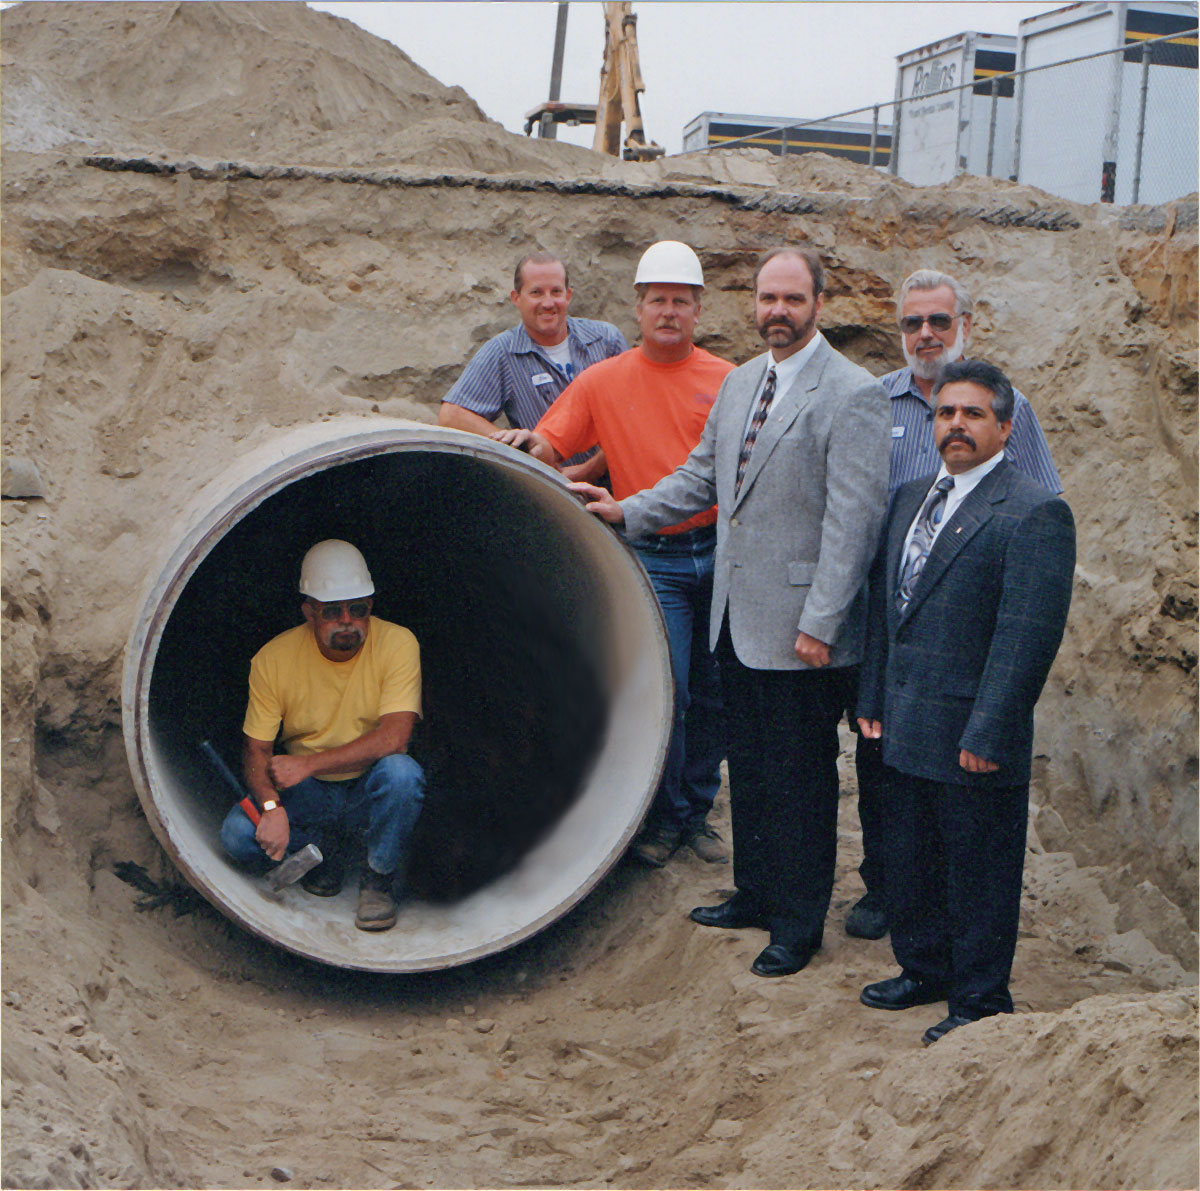 Photo op of staff, management and a worker kneeling in a large pipe under construction, circa 1990's.